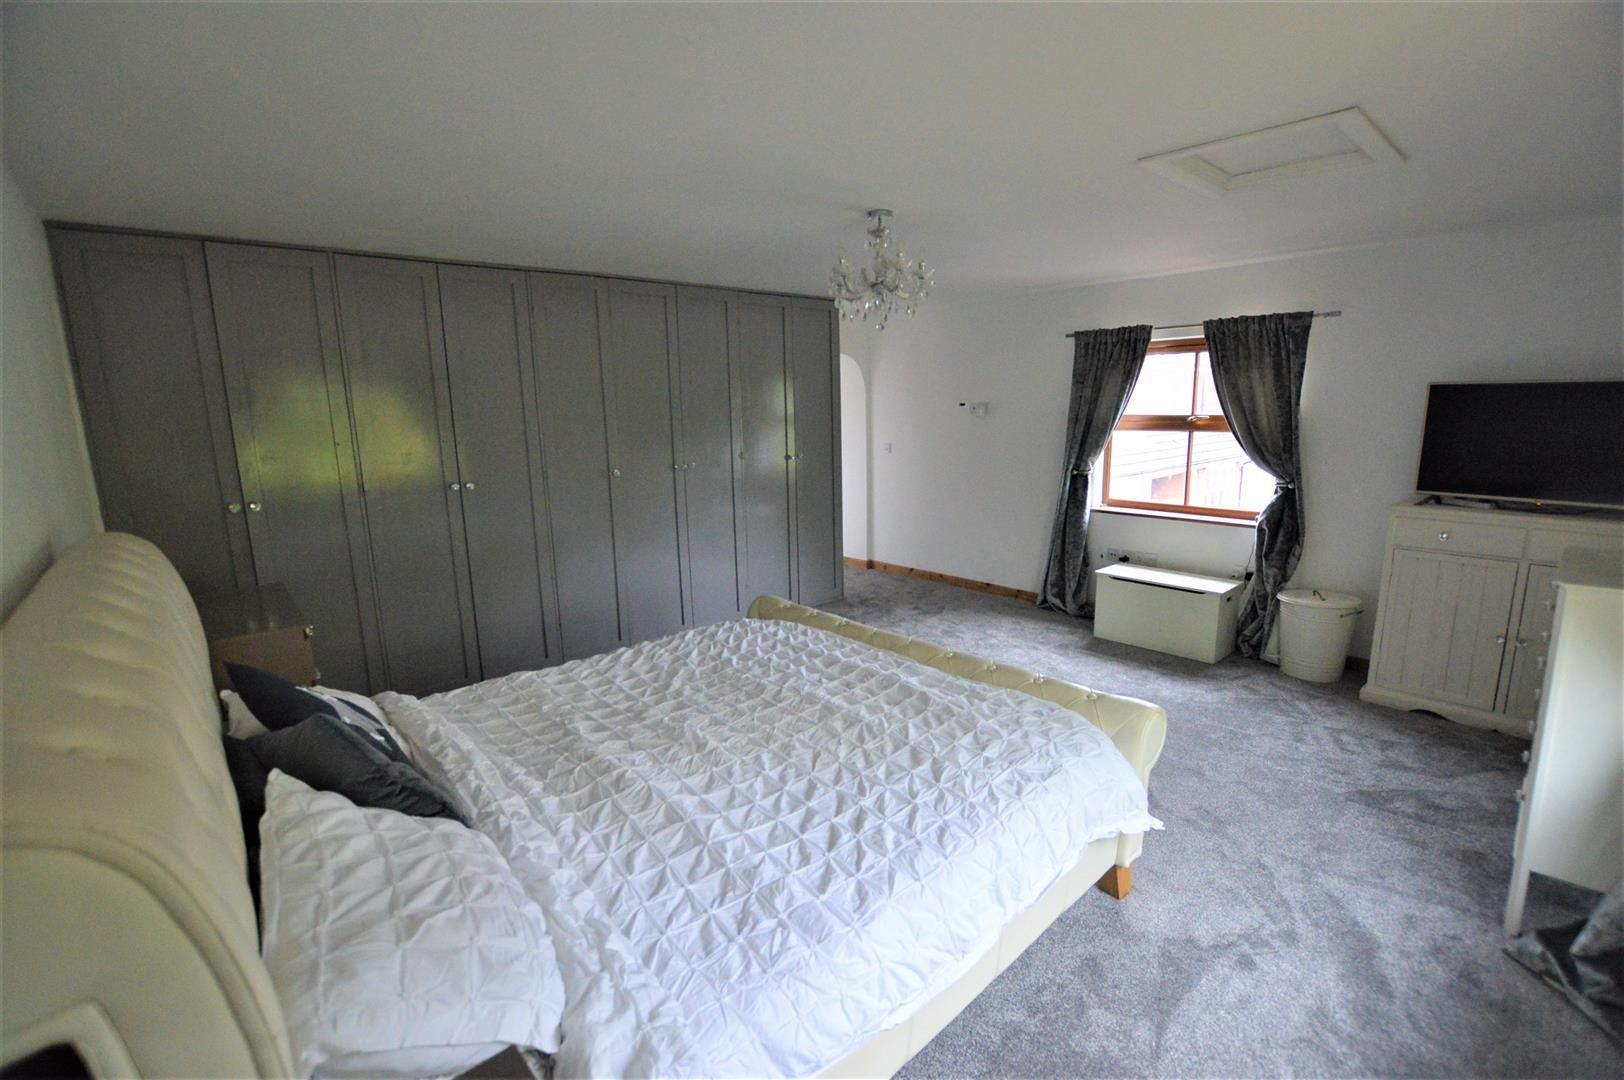 5 bed detached for sale in Leominster 6